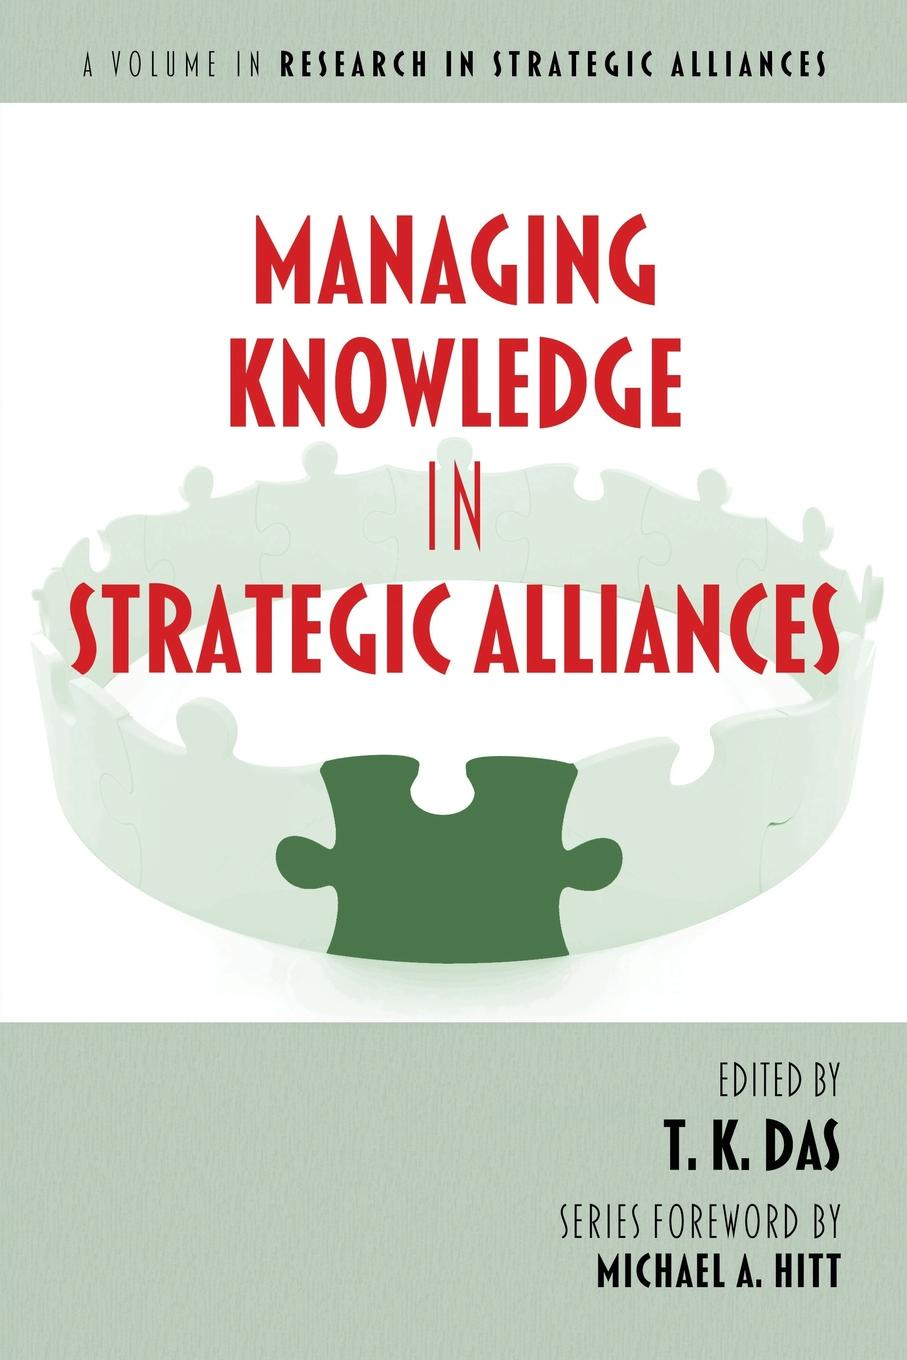 Managing Knowledge in Strategic Alliances marshall goldsmith the organization of the future 2 visions strategies and insights on managing in a new era